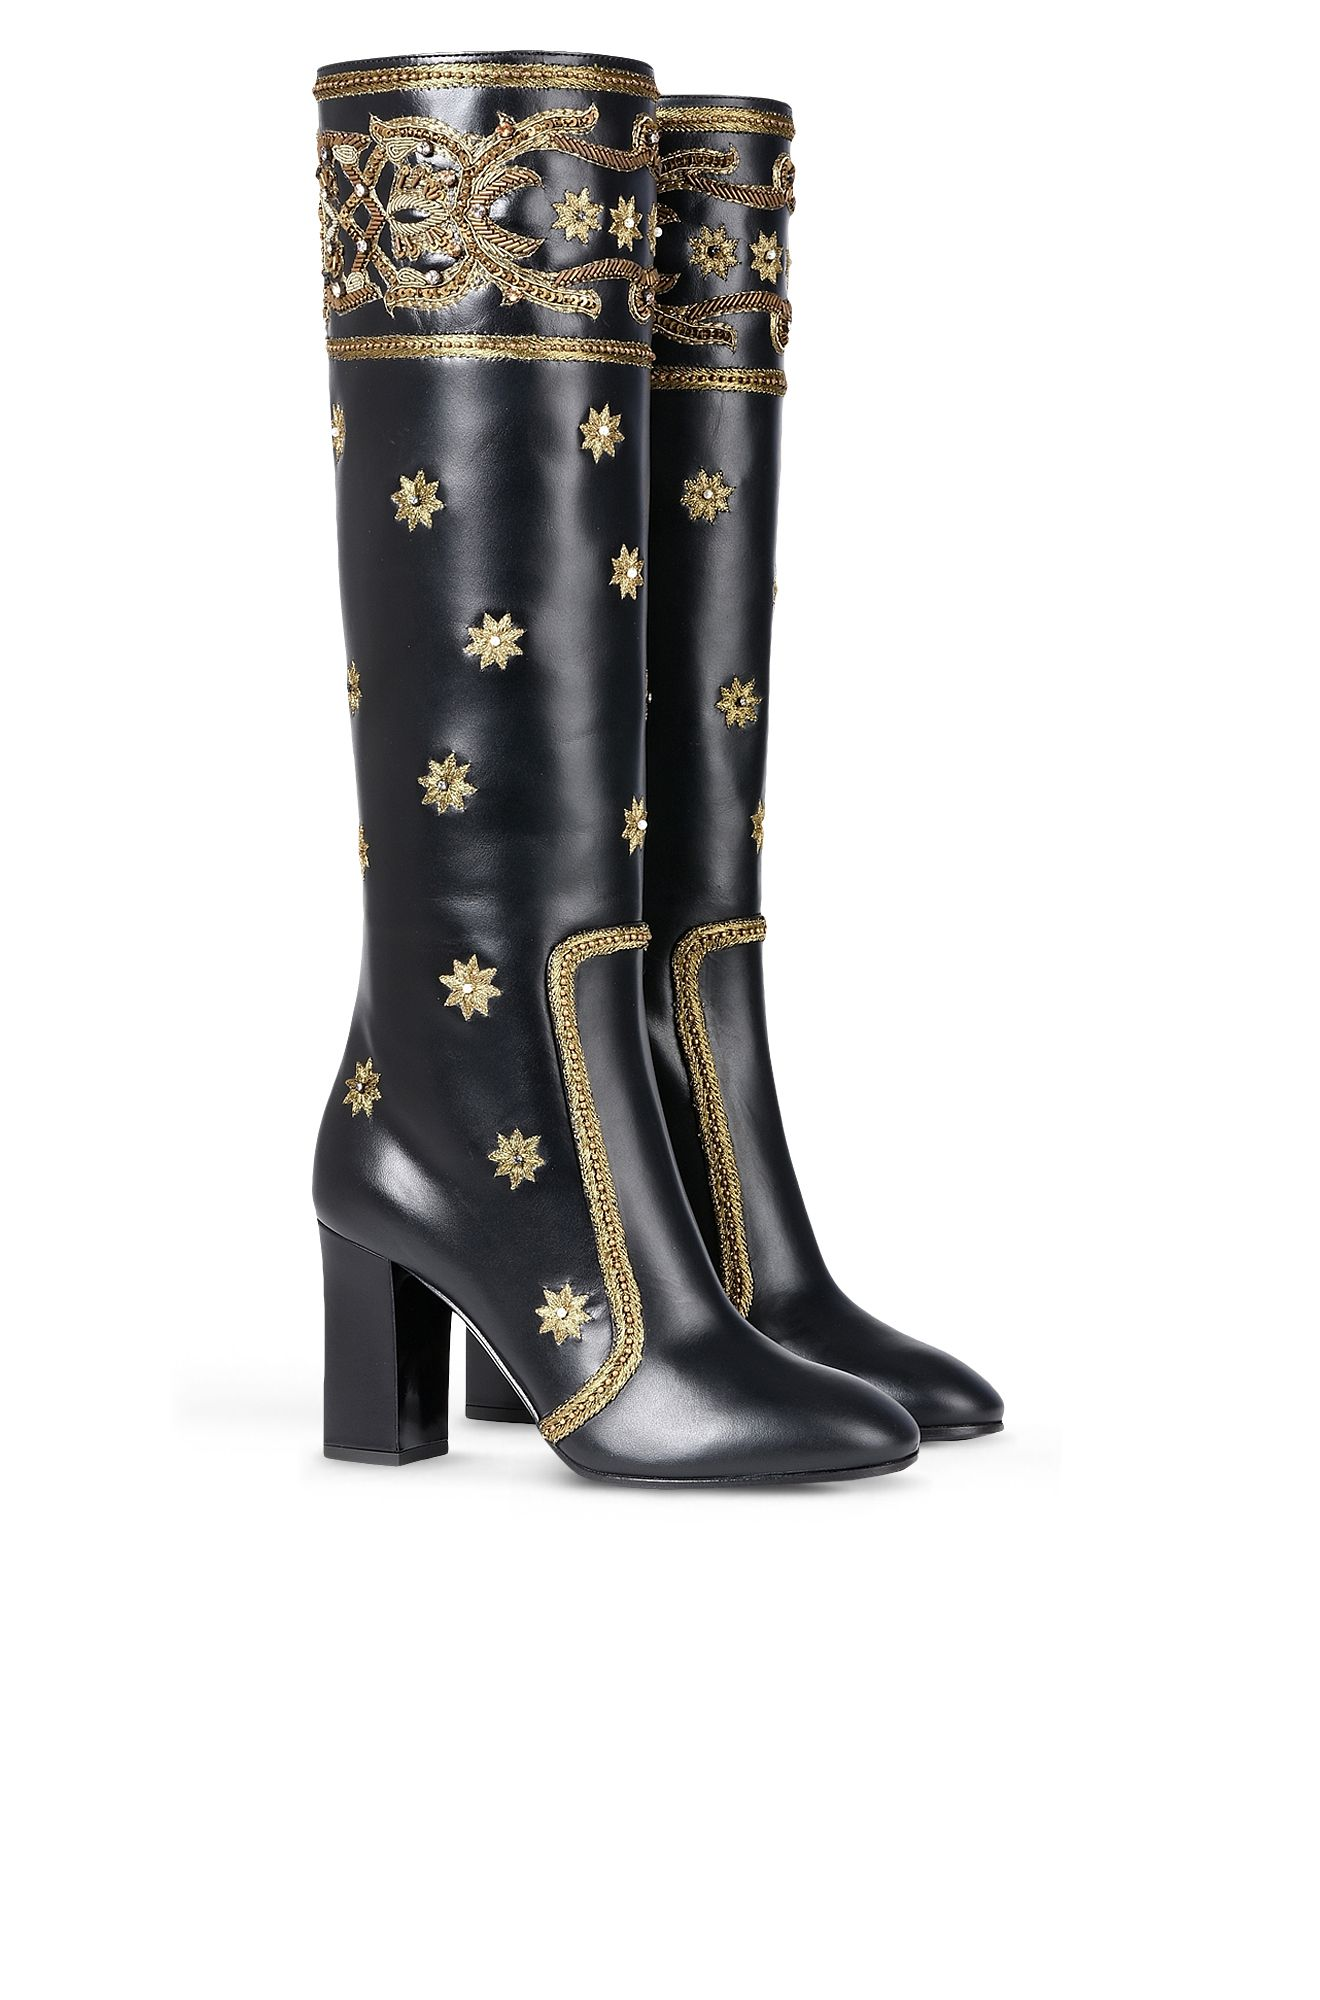 Boots with gold embroidery